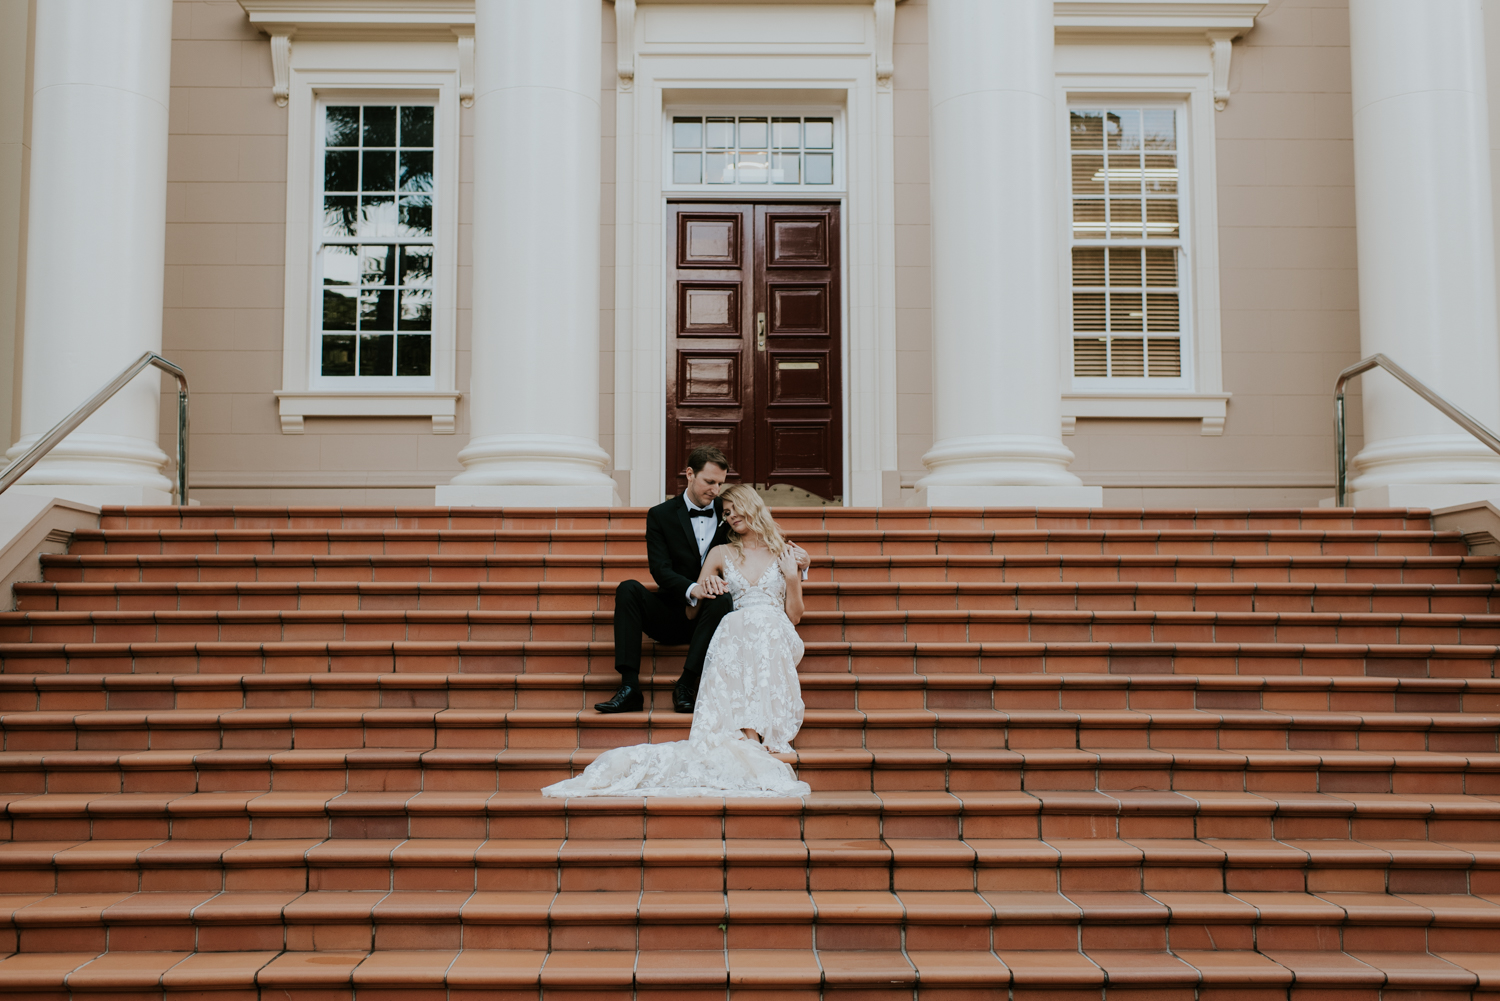 Brisbane Wedding Photographer | Engagement-Elopement Photography | Factory51-City Botantic Gardens Wedding-62.jpg